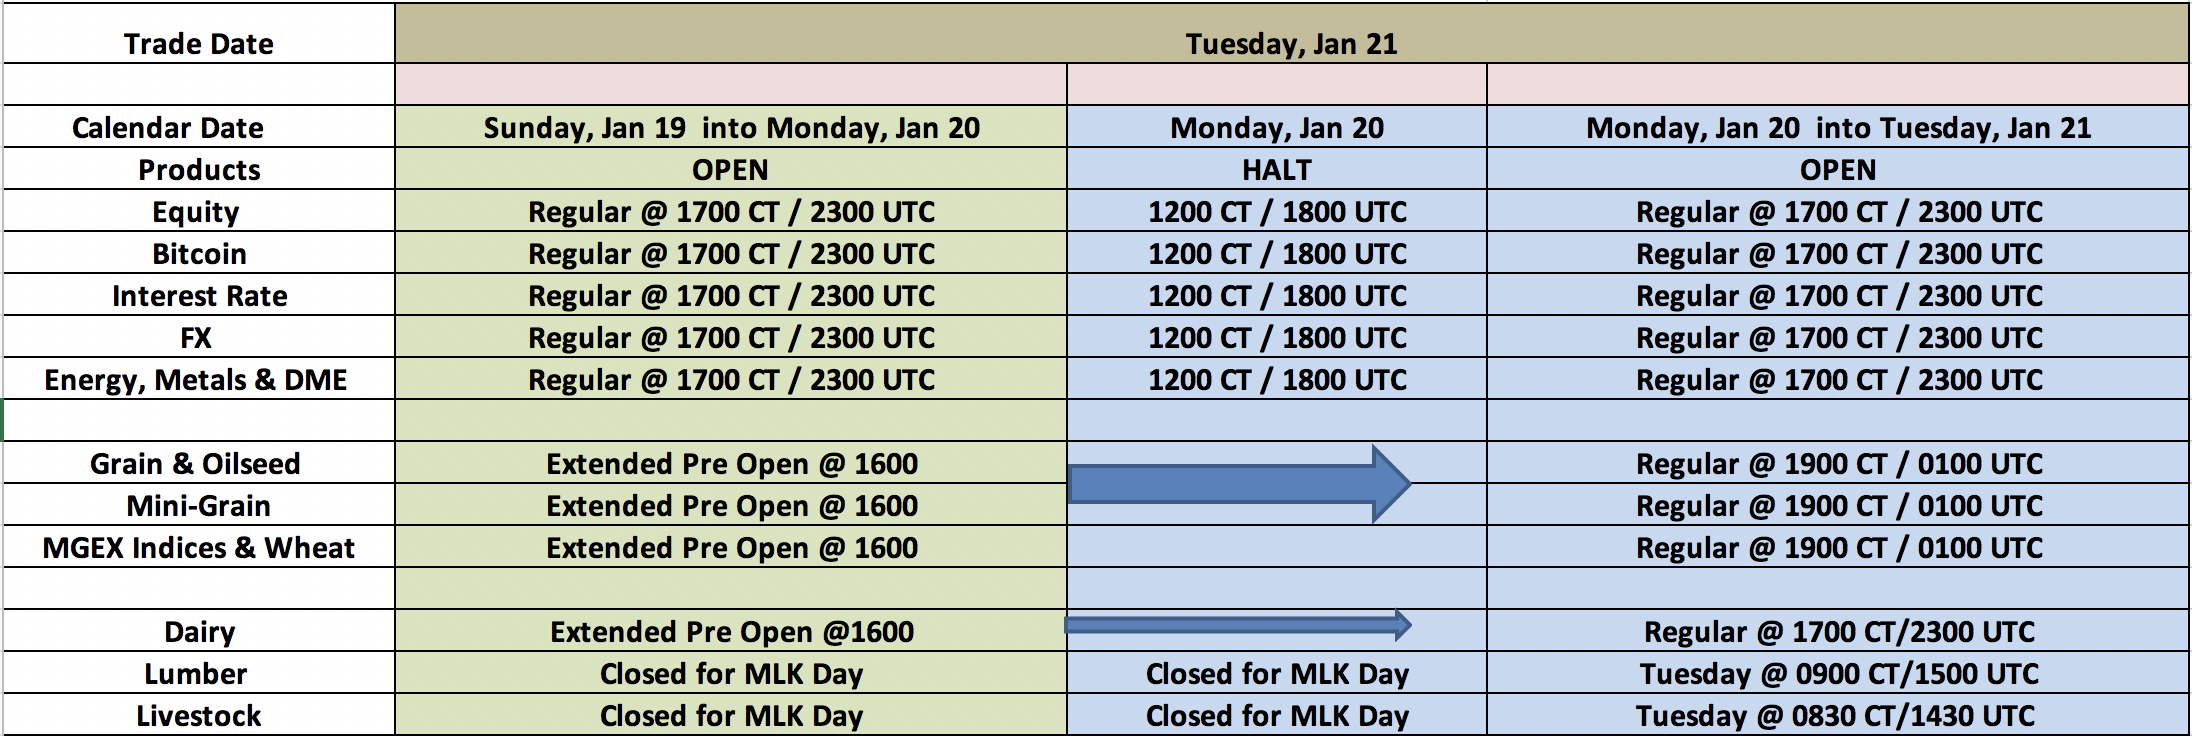 CME_Group_-_Martin_Luther_King_Day_Holiday_Schedule_-_2020.png